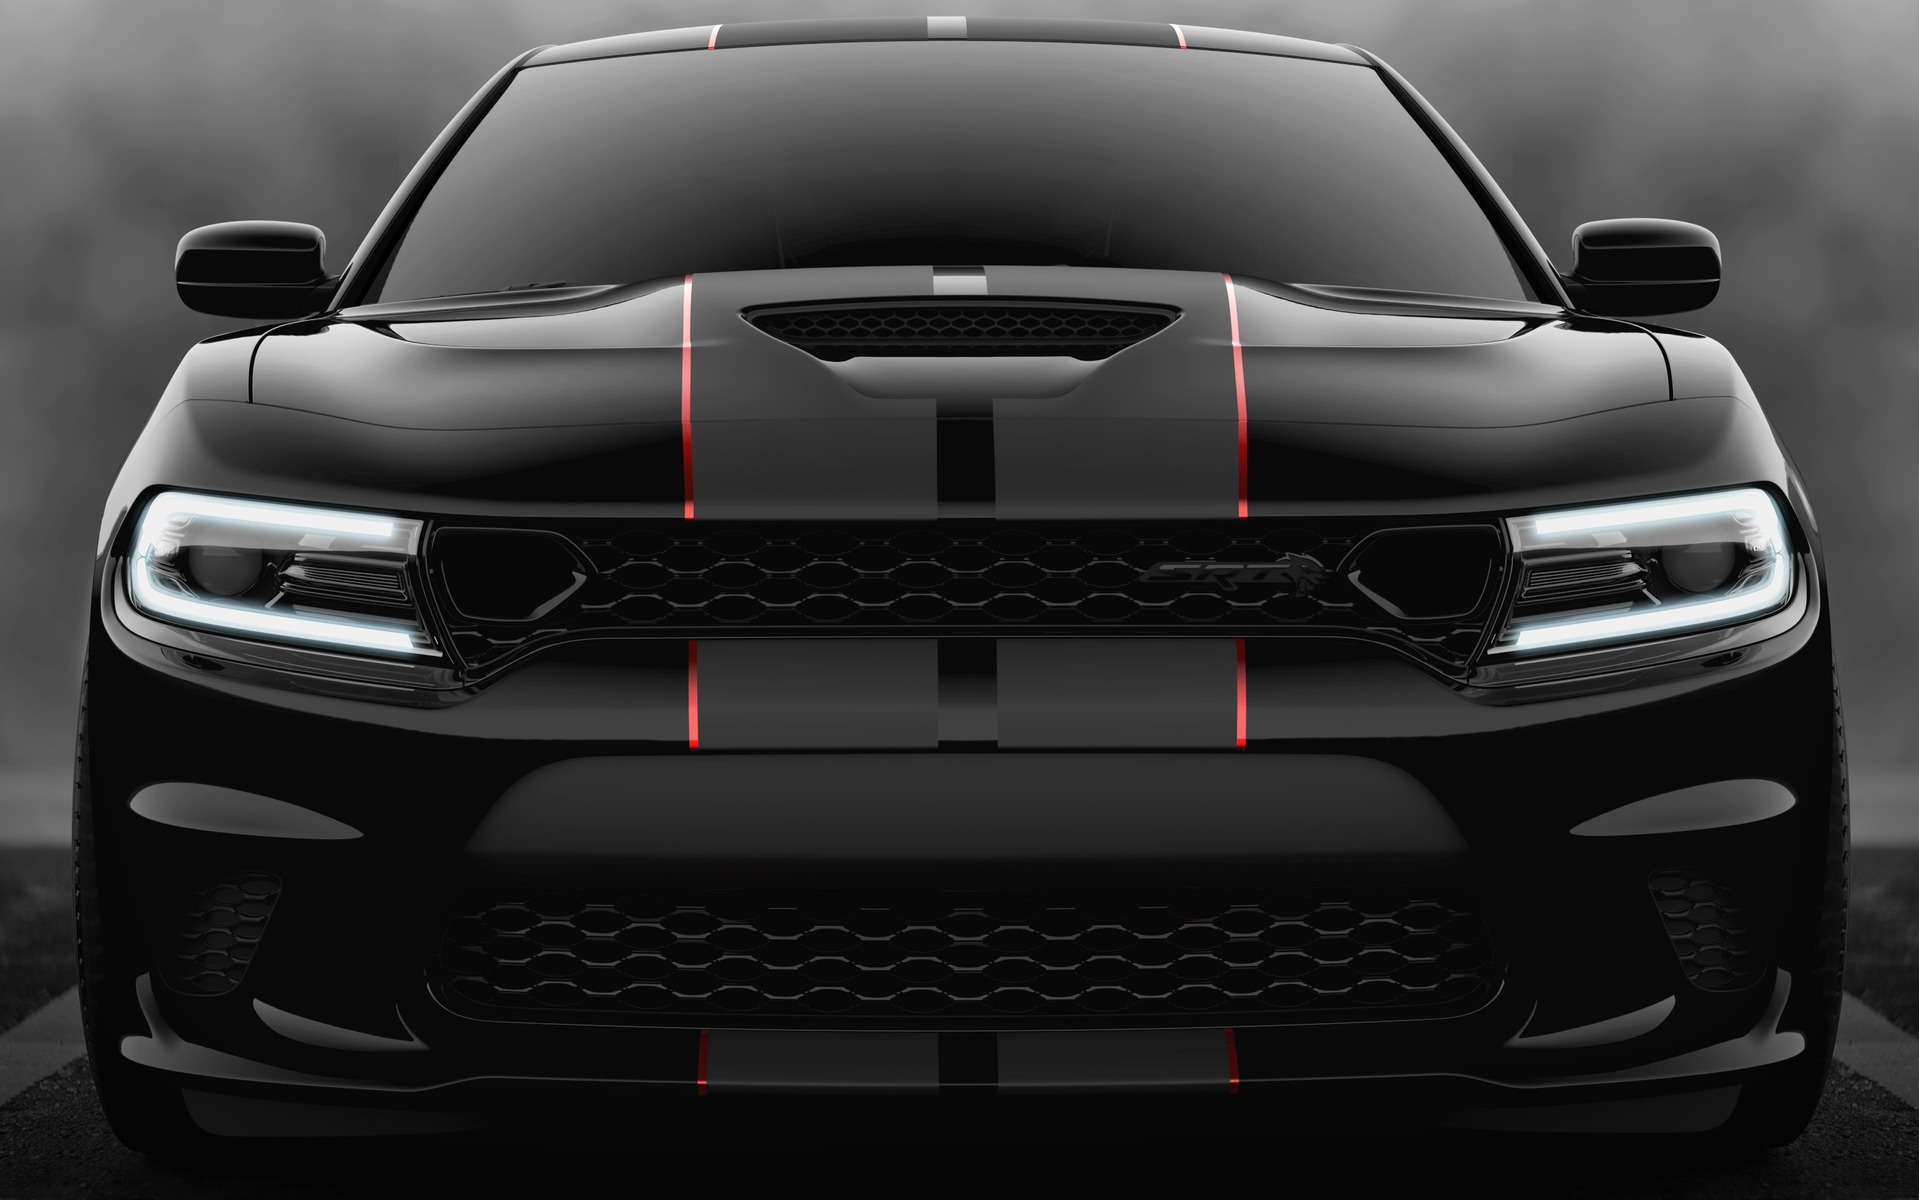 2019 Dodge Charger Srt Hellcat Goes Dark With Octane